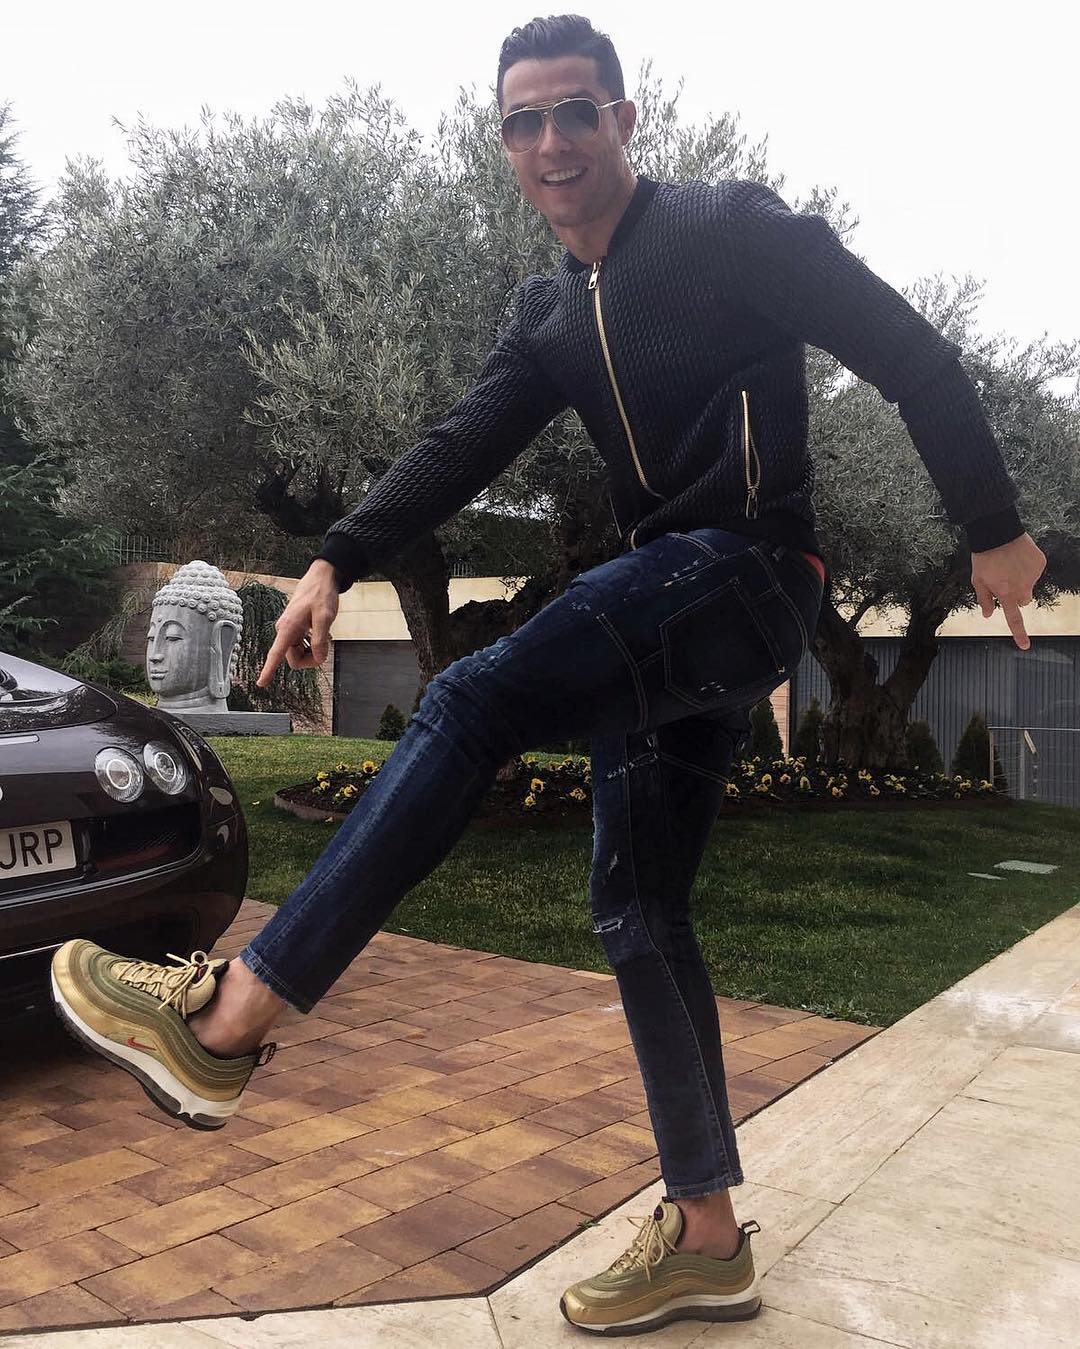 SPOTTED: Cristian Ronaldo In Dolce & Gabbana Jacket And Nike Air Max 97 Sneakers